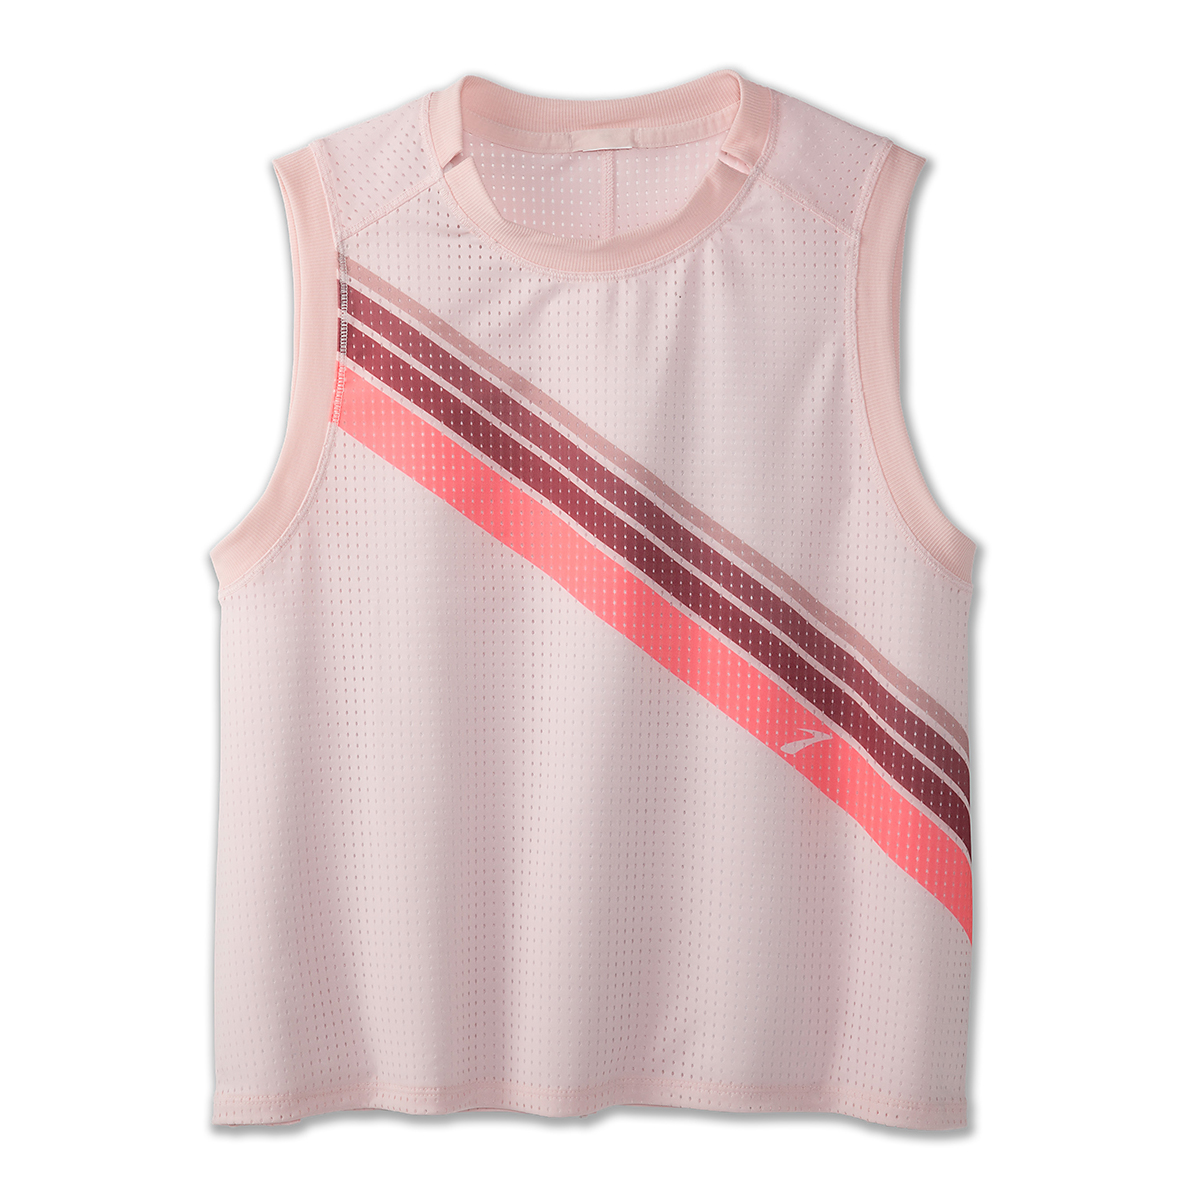 Women's Brooks Further Tank - Color: Rosewater/Stripe - Size: S, Rosewater/Stripe, large, image 5